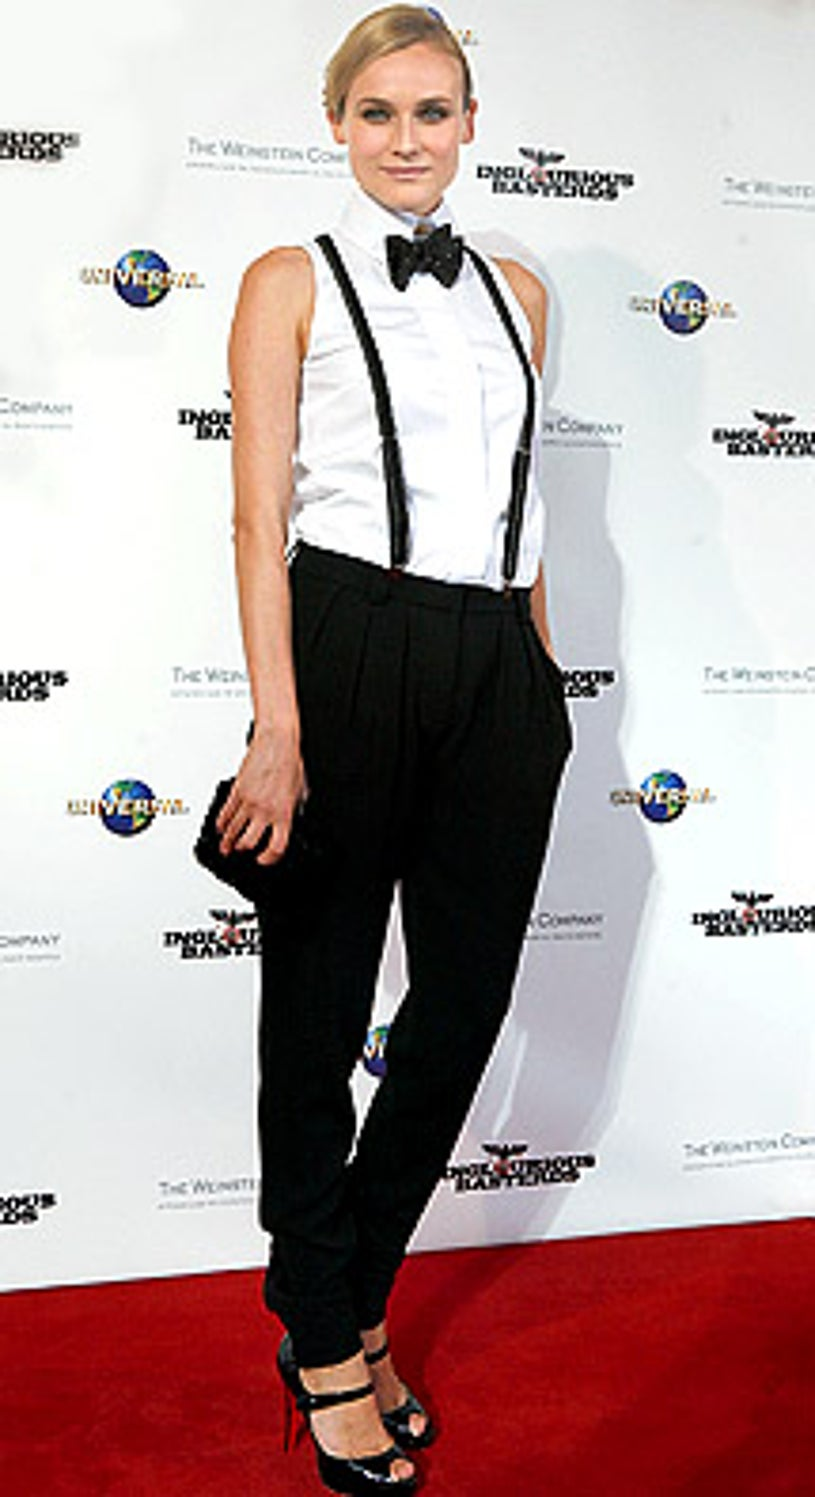 Diane Kruger - The 'Inglorious Basterds' Melbourne premiere in Australia, August 2, 2009